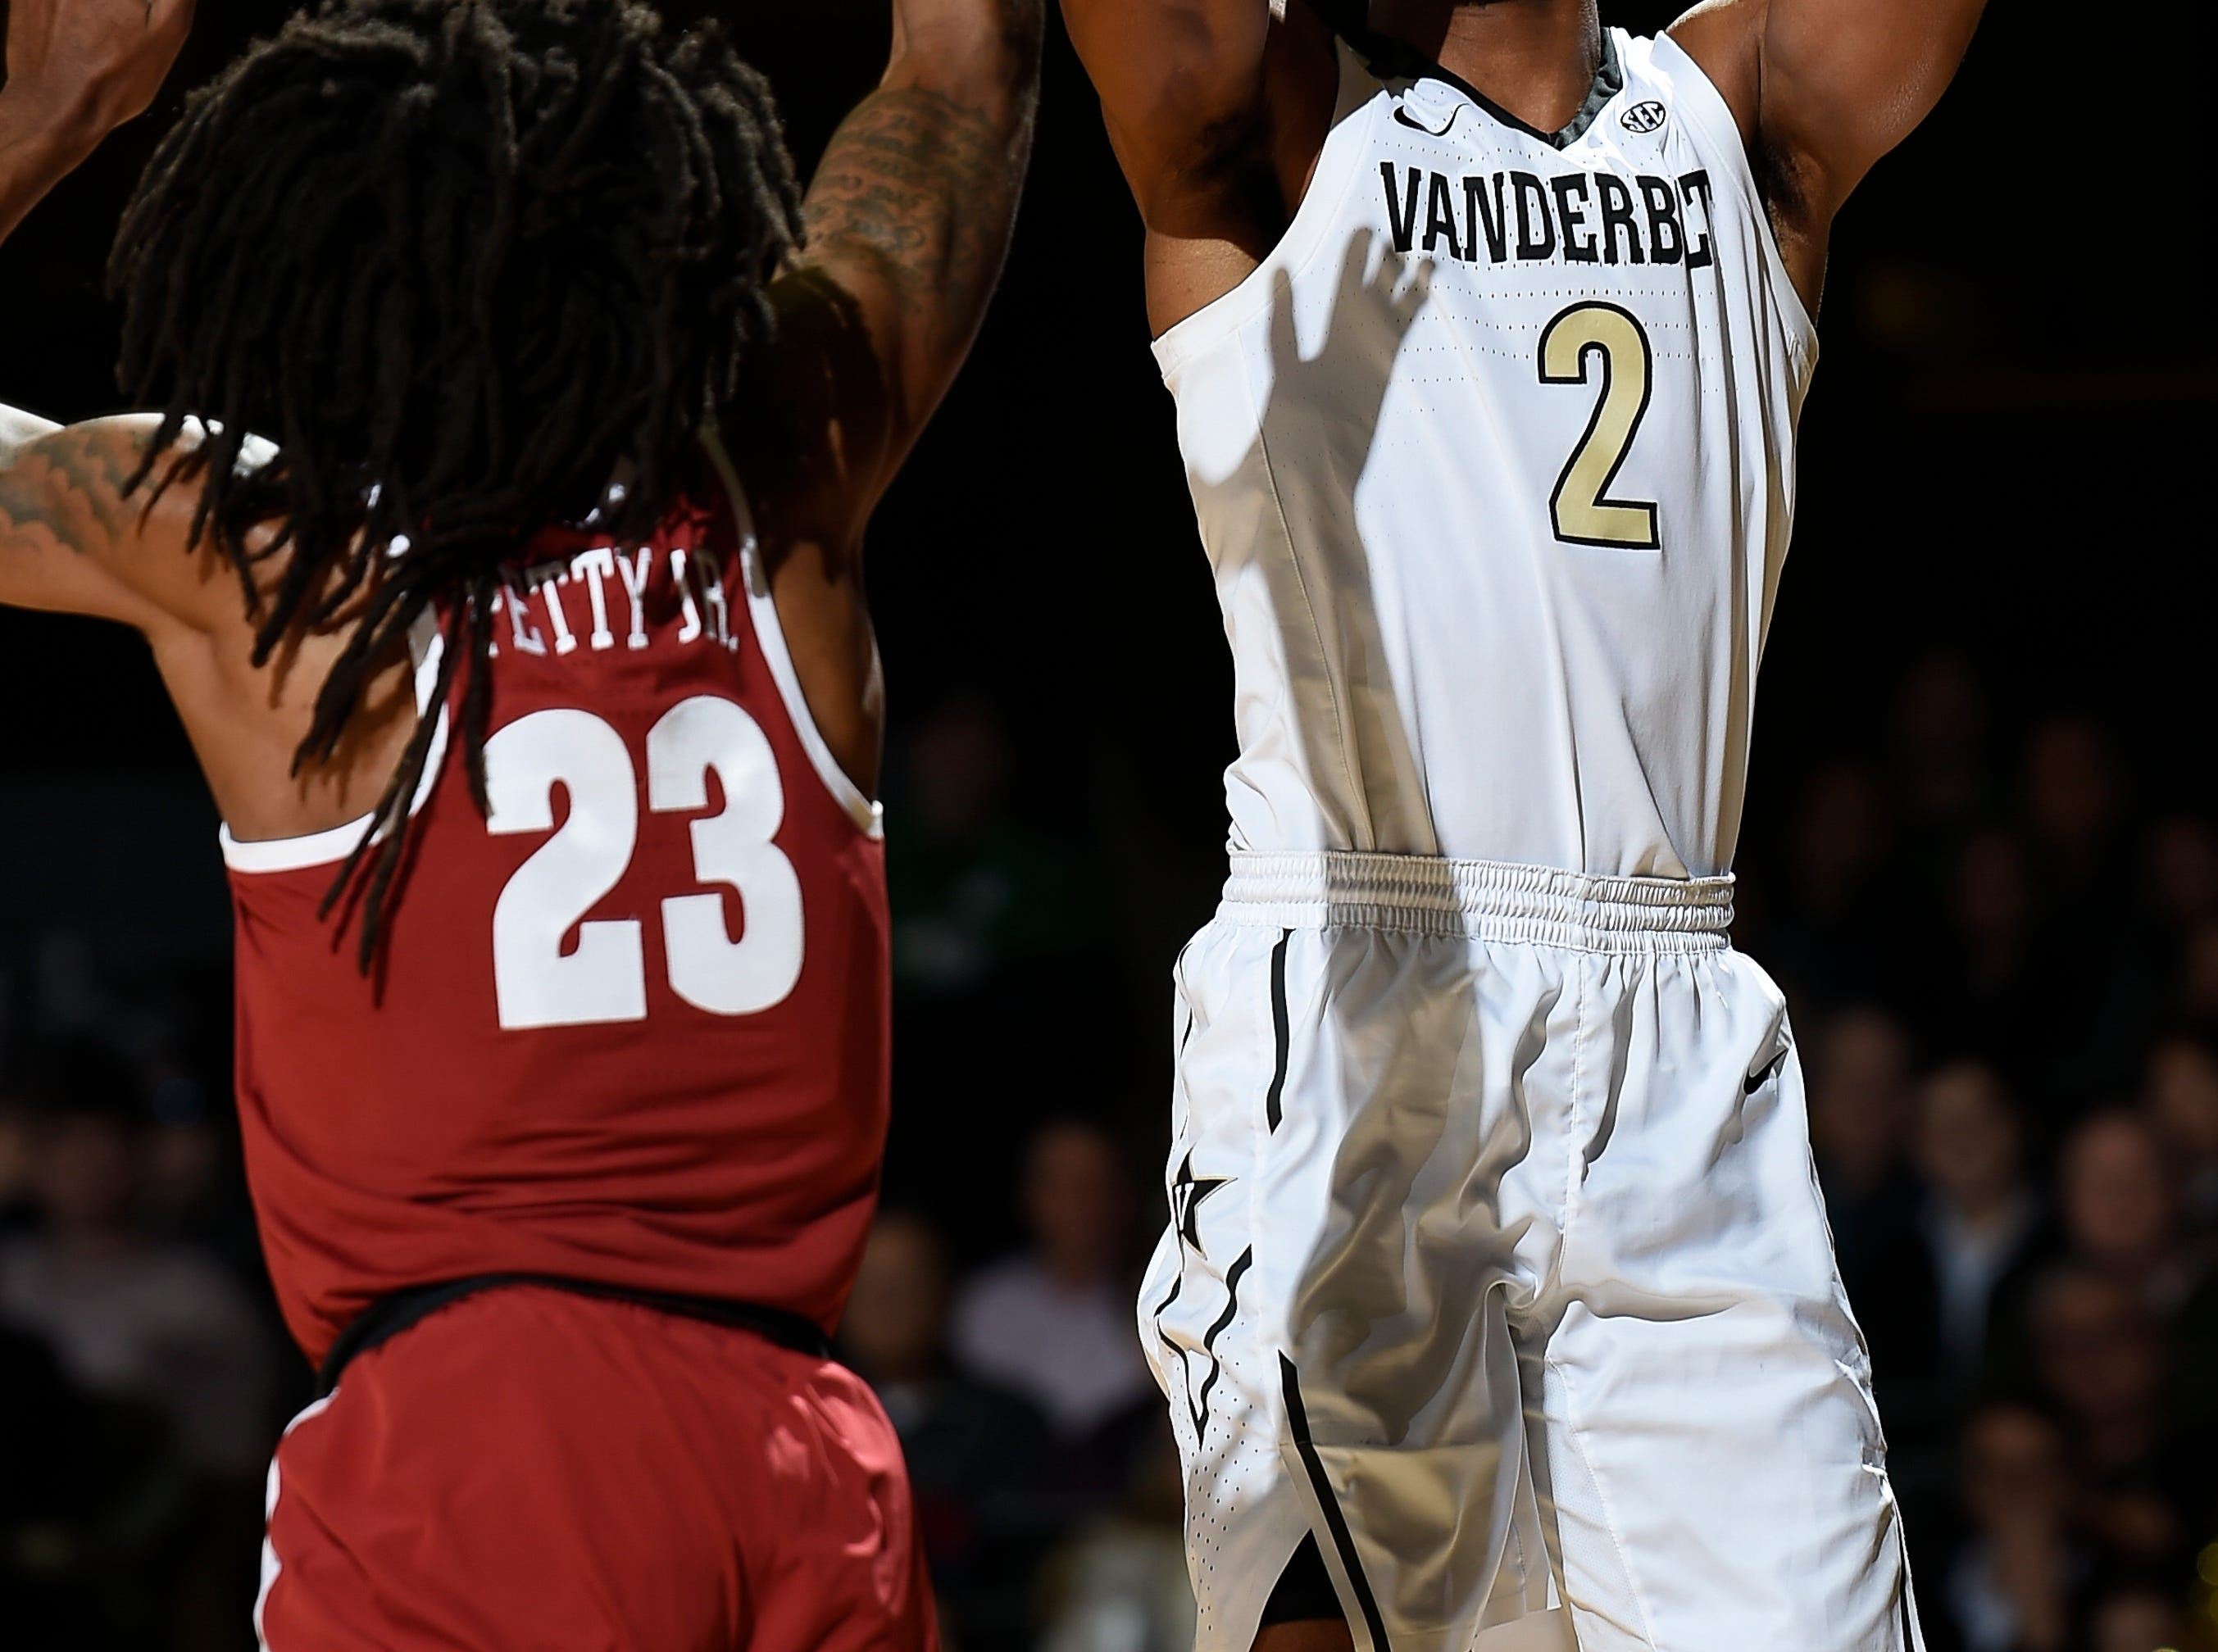 Vanderbilt guard Joe Toye (2) shoots over Alabama guard John Petty (23) during the first half at Memorial Gym Saturday Feb. 9, 2019 in Nashville, Tenn.